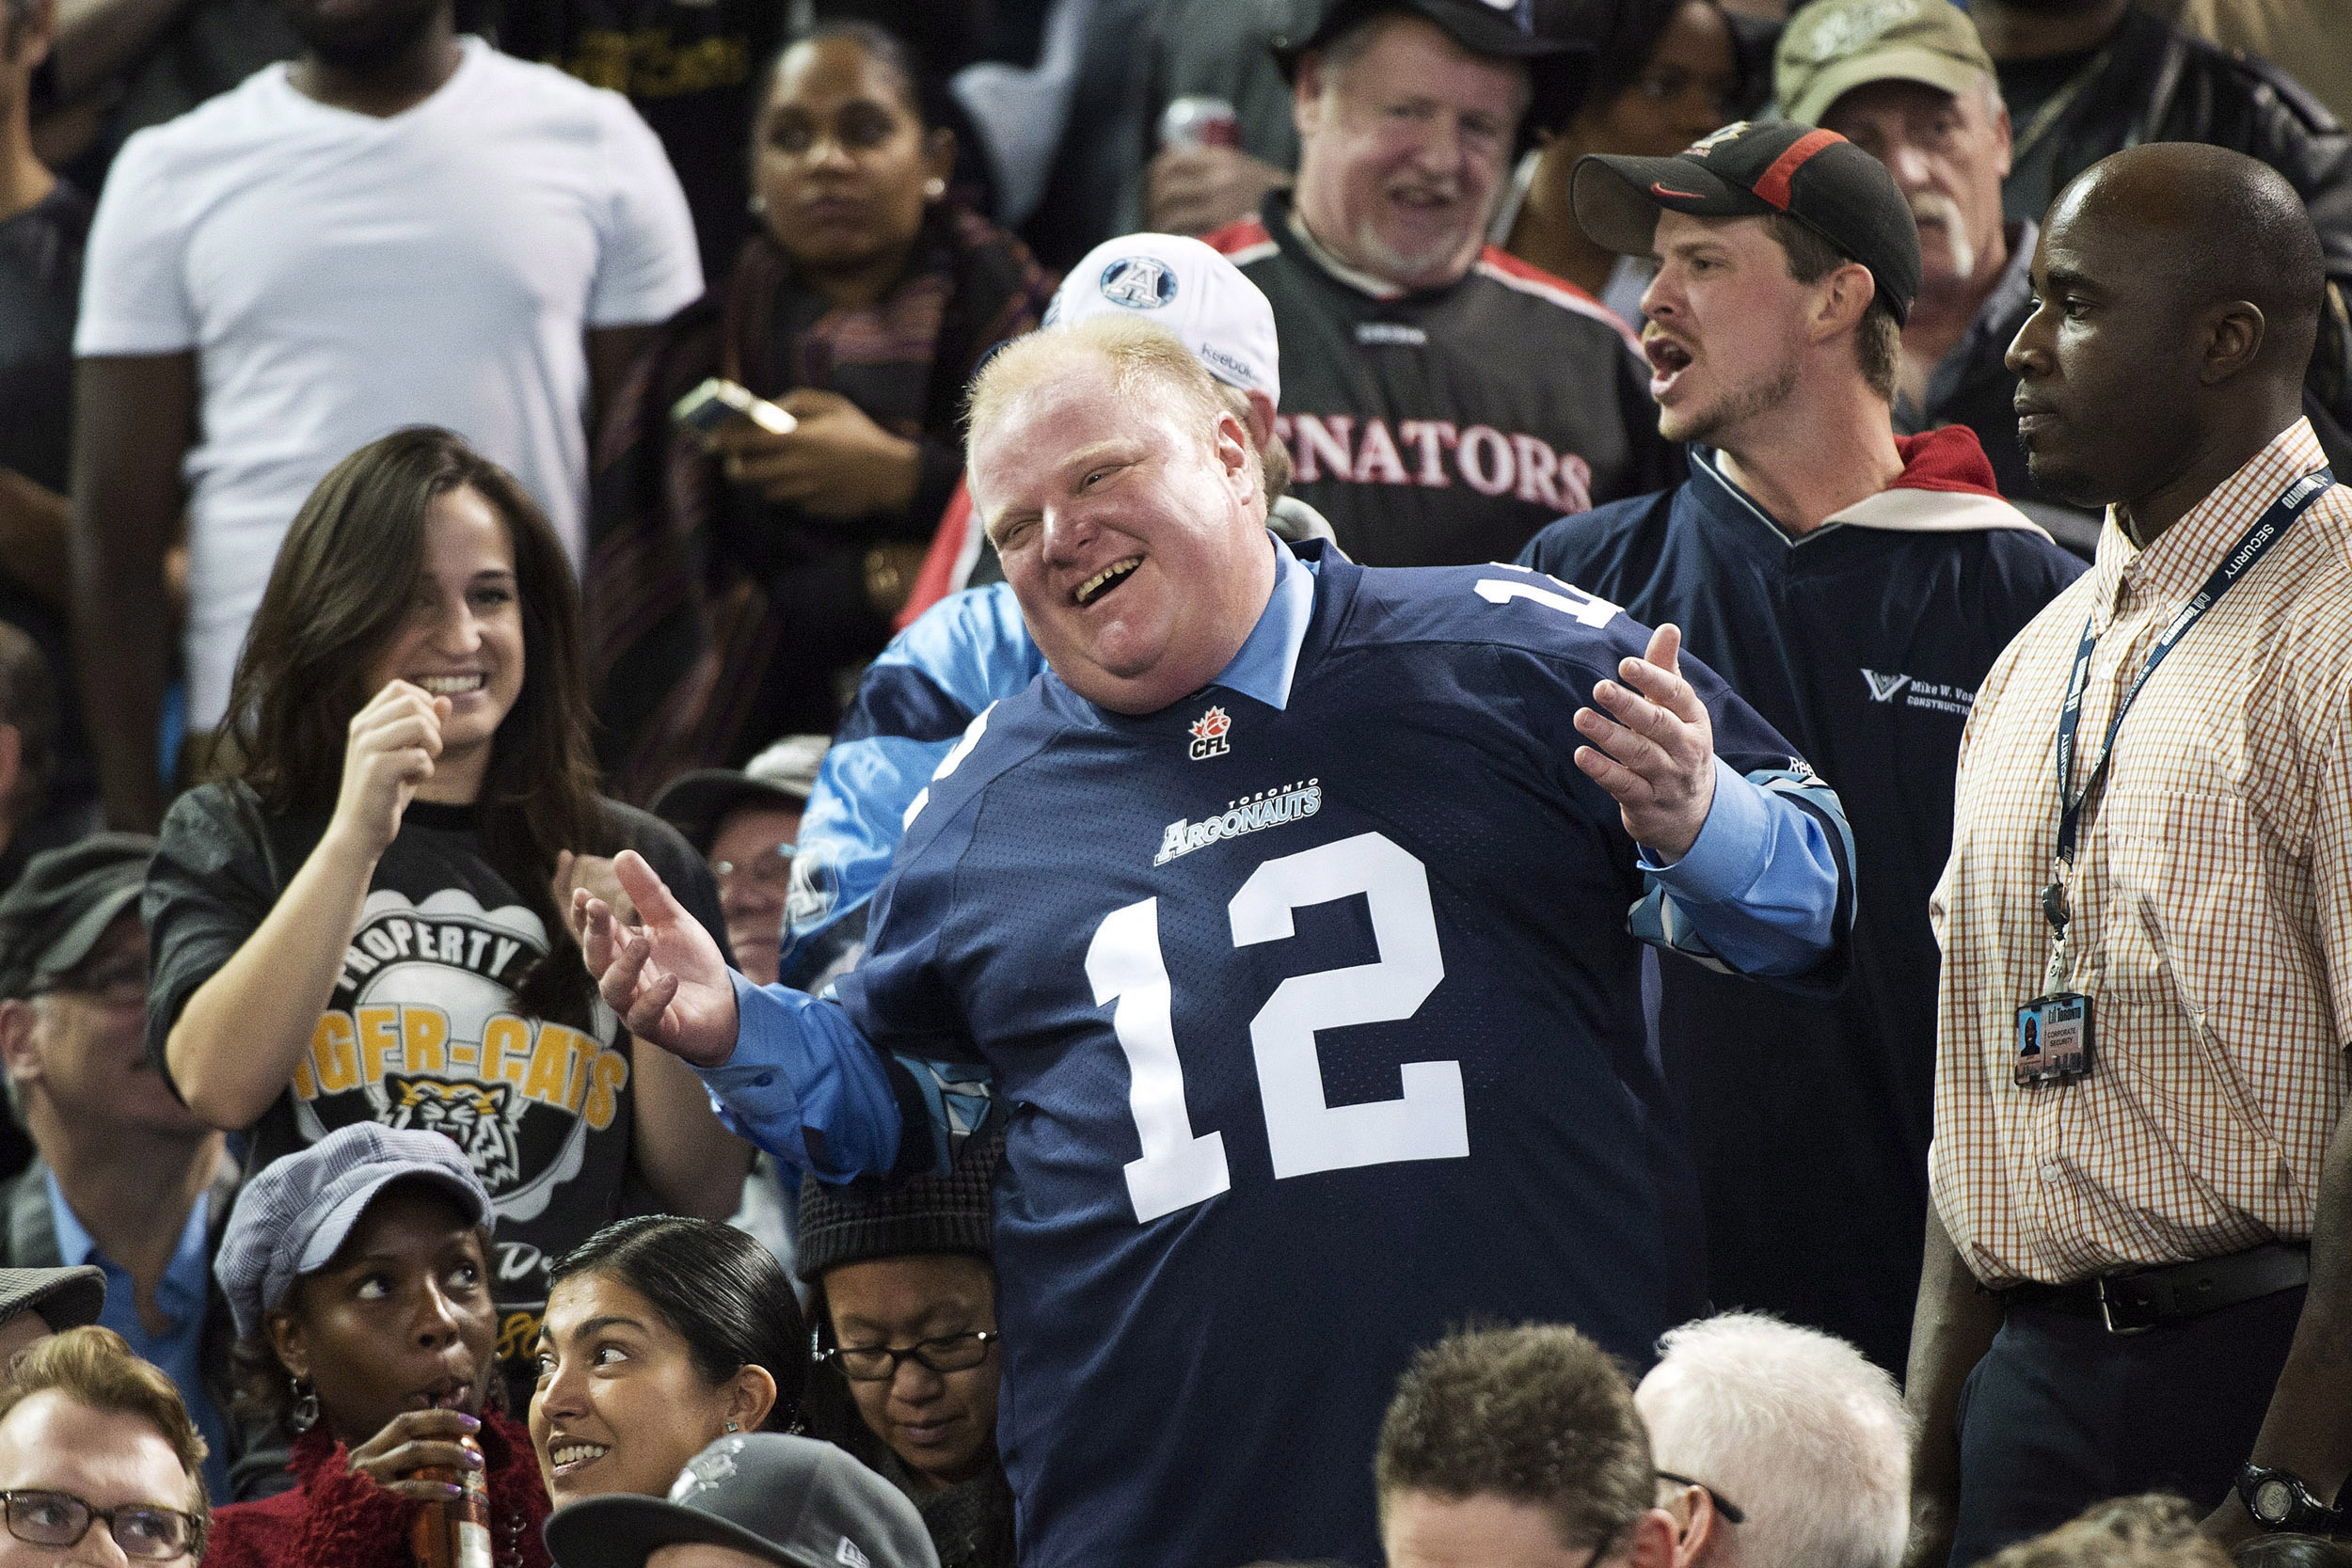 Mayor Rob Ford laughs with fans as he attends the Toronto Argonauts and Hamilton Tiger-Cats CFL Eastern Conference final football game in Toronto, Nov. 17, 2013. THE CANADIAN PRESS/Nathan Denette